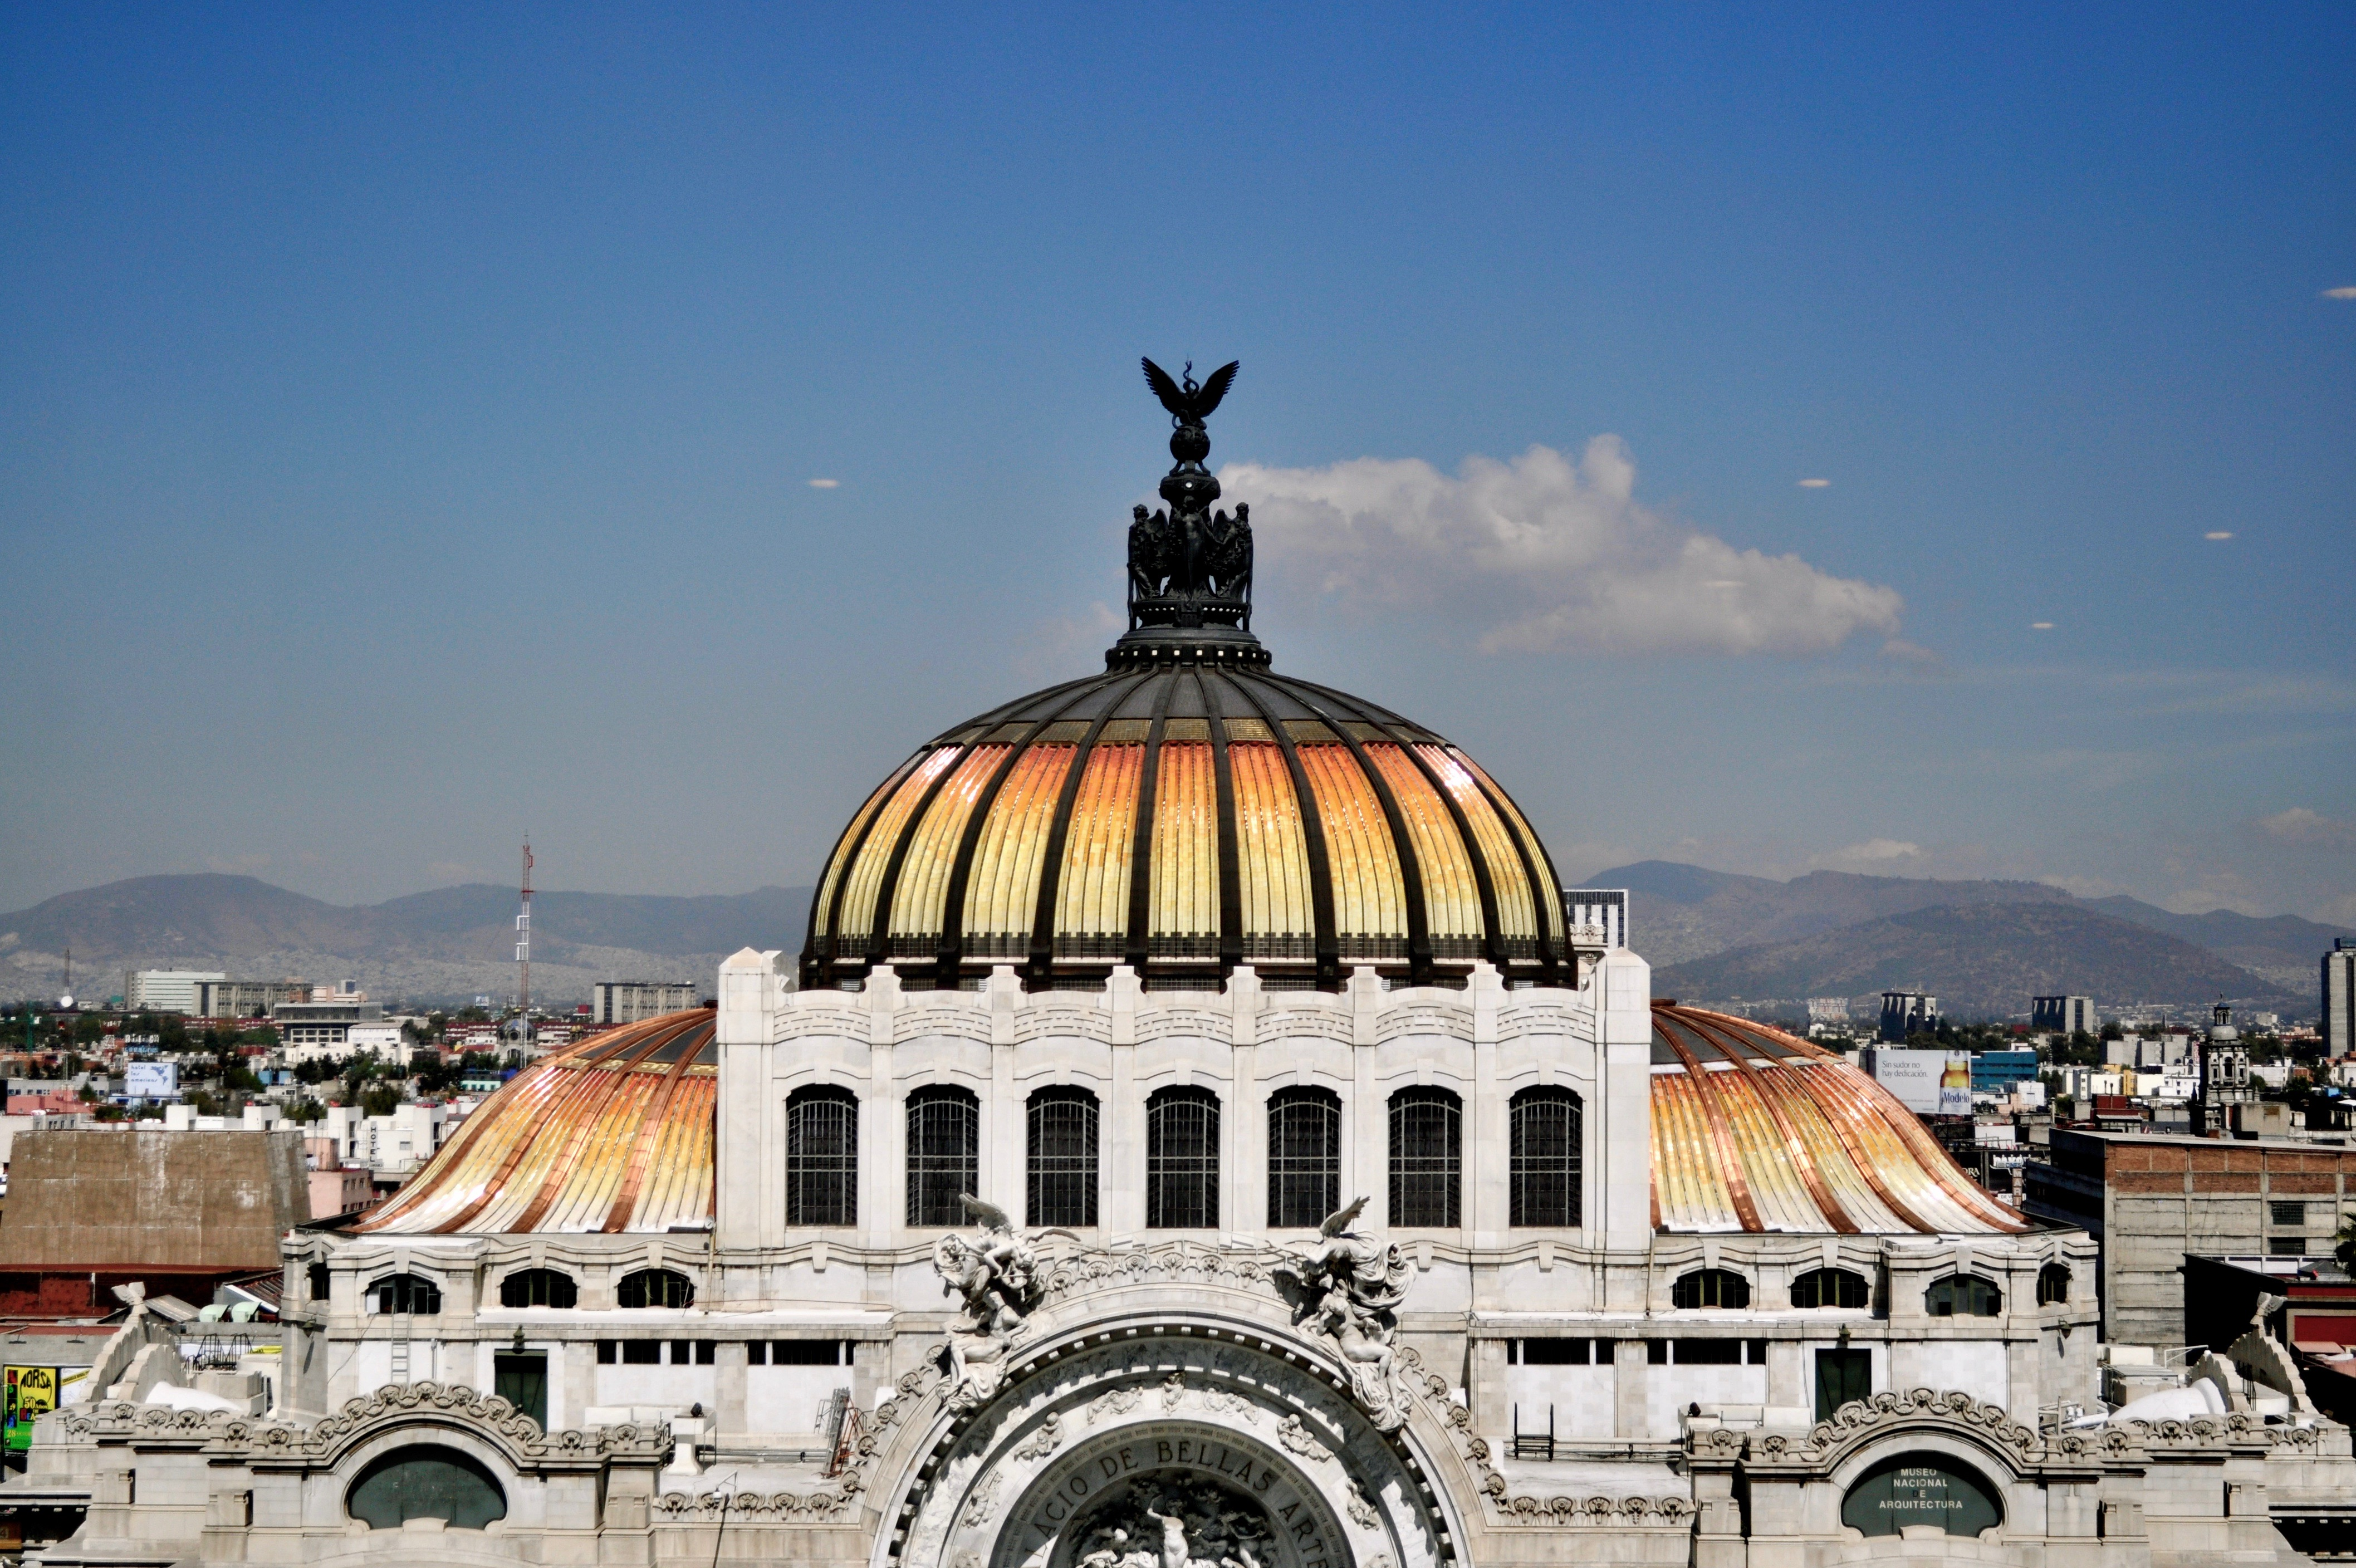 Where to Stay in Mexico City: The Best Hotels and Neighborhoods